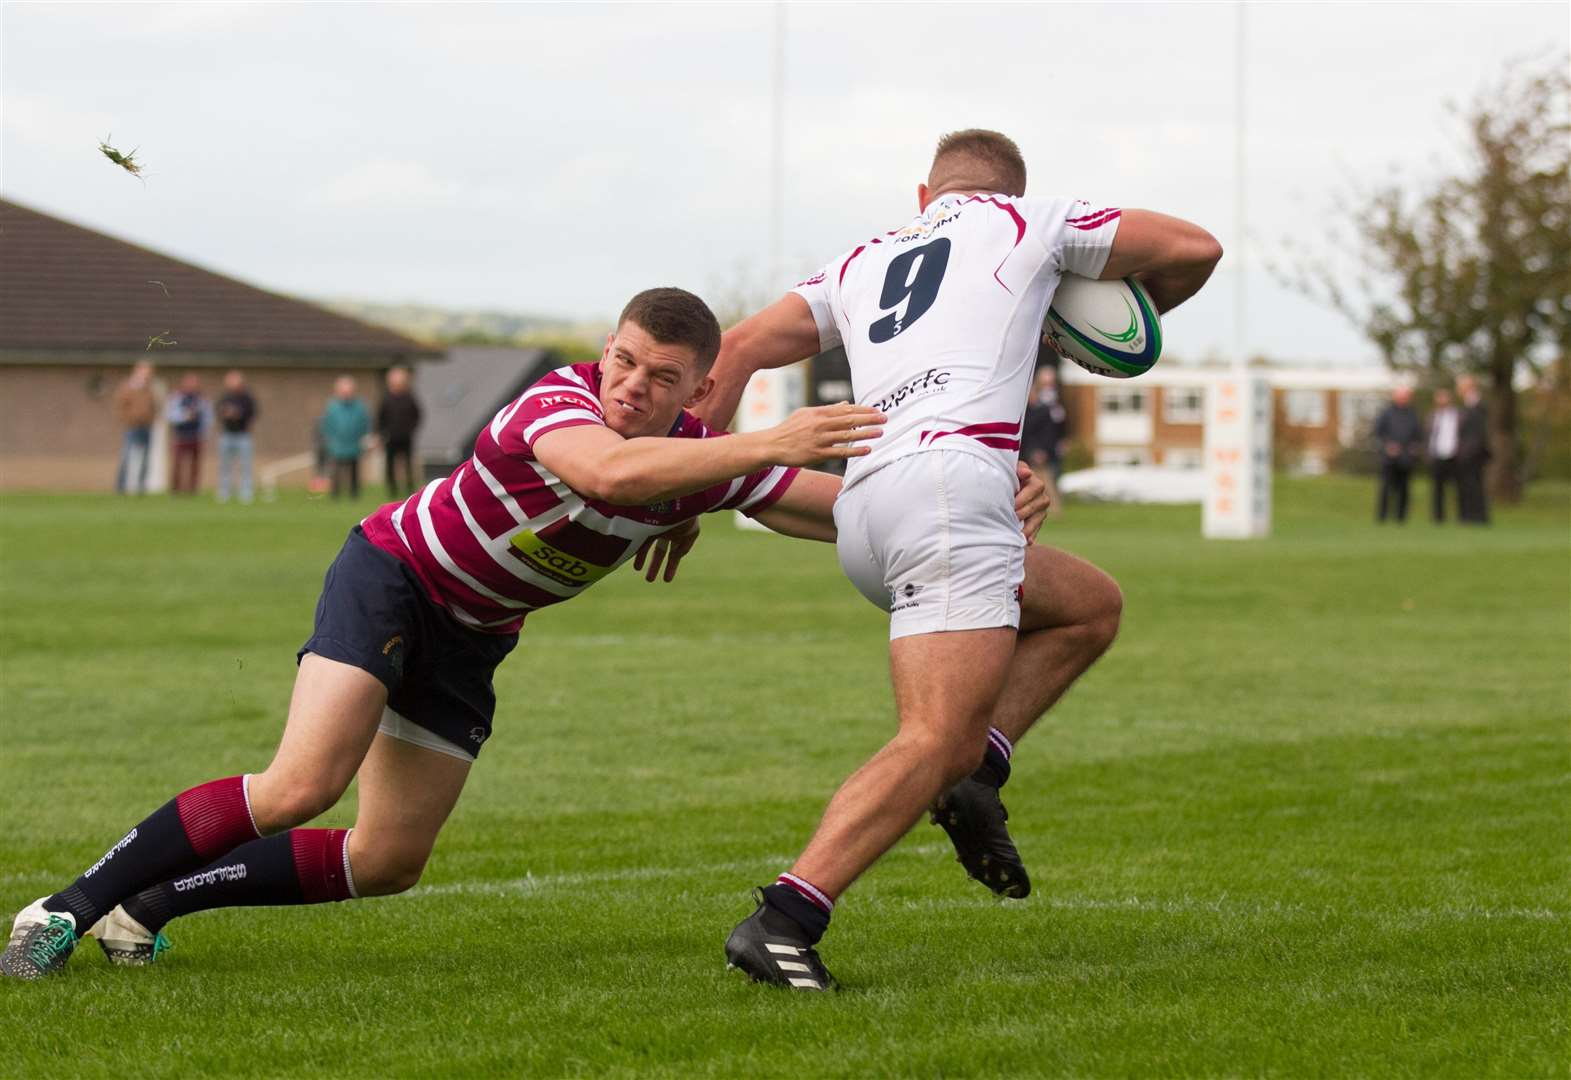 Paul Allen putting down foundations of Shelford squad